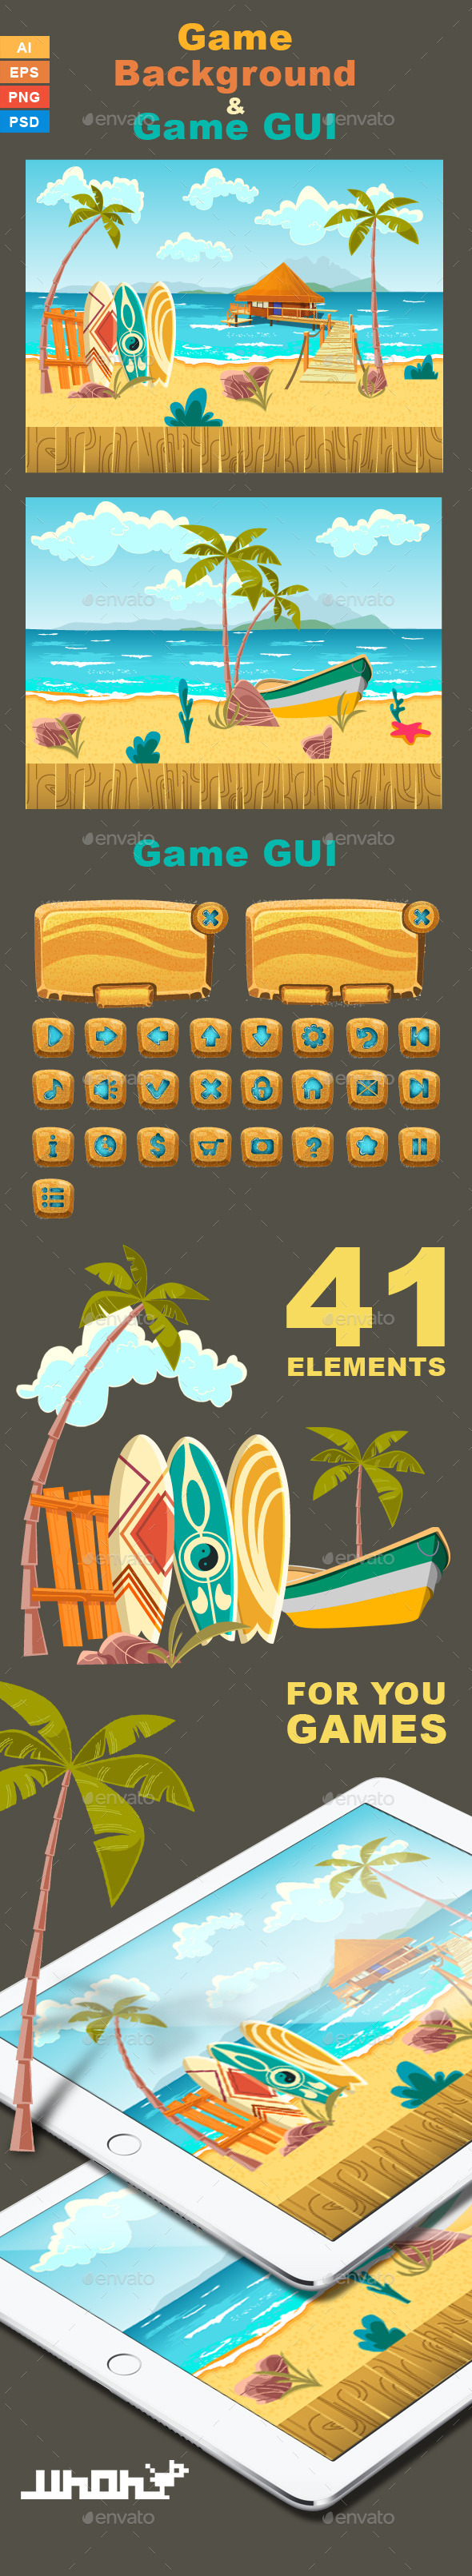 Game Background Beach - Backgrounds Game Assets